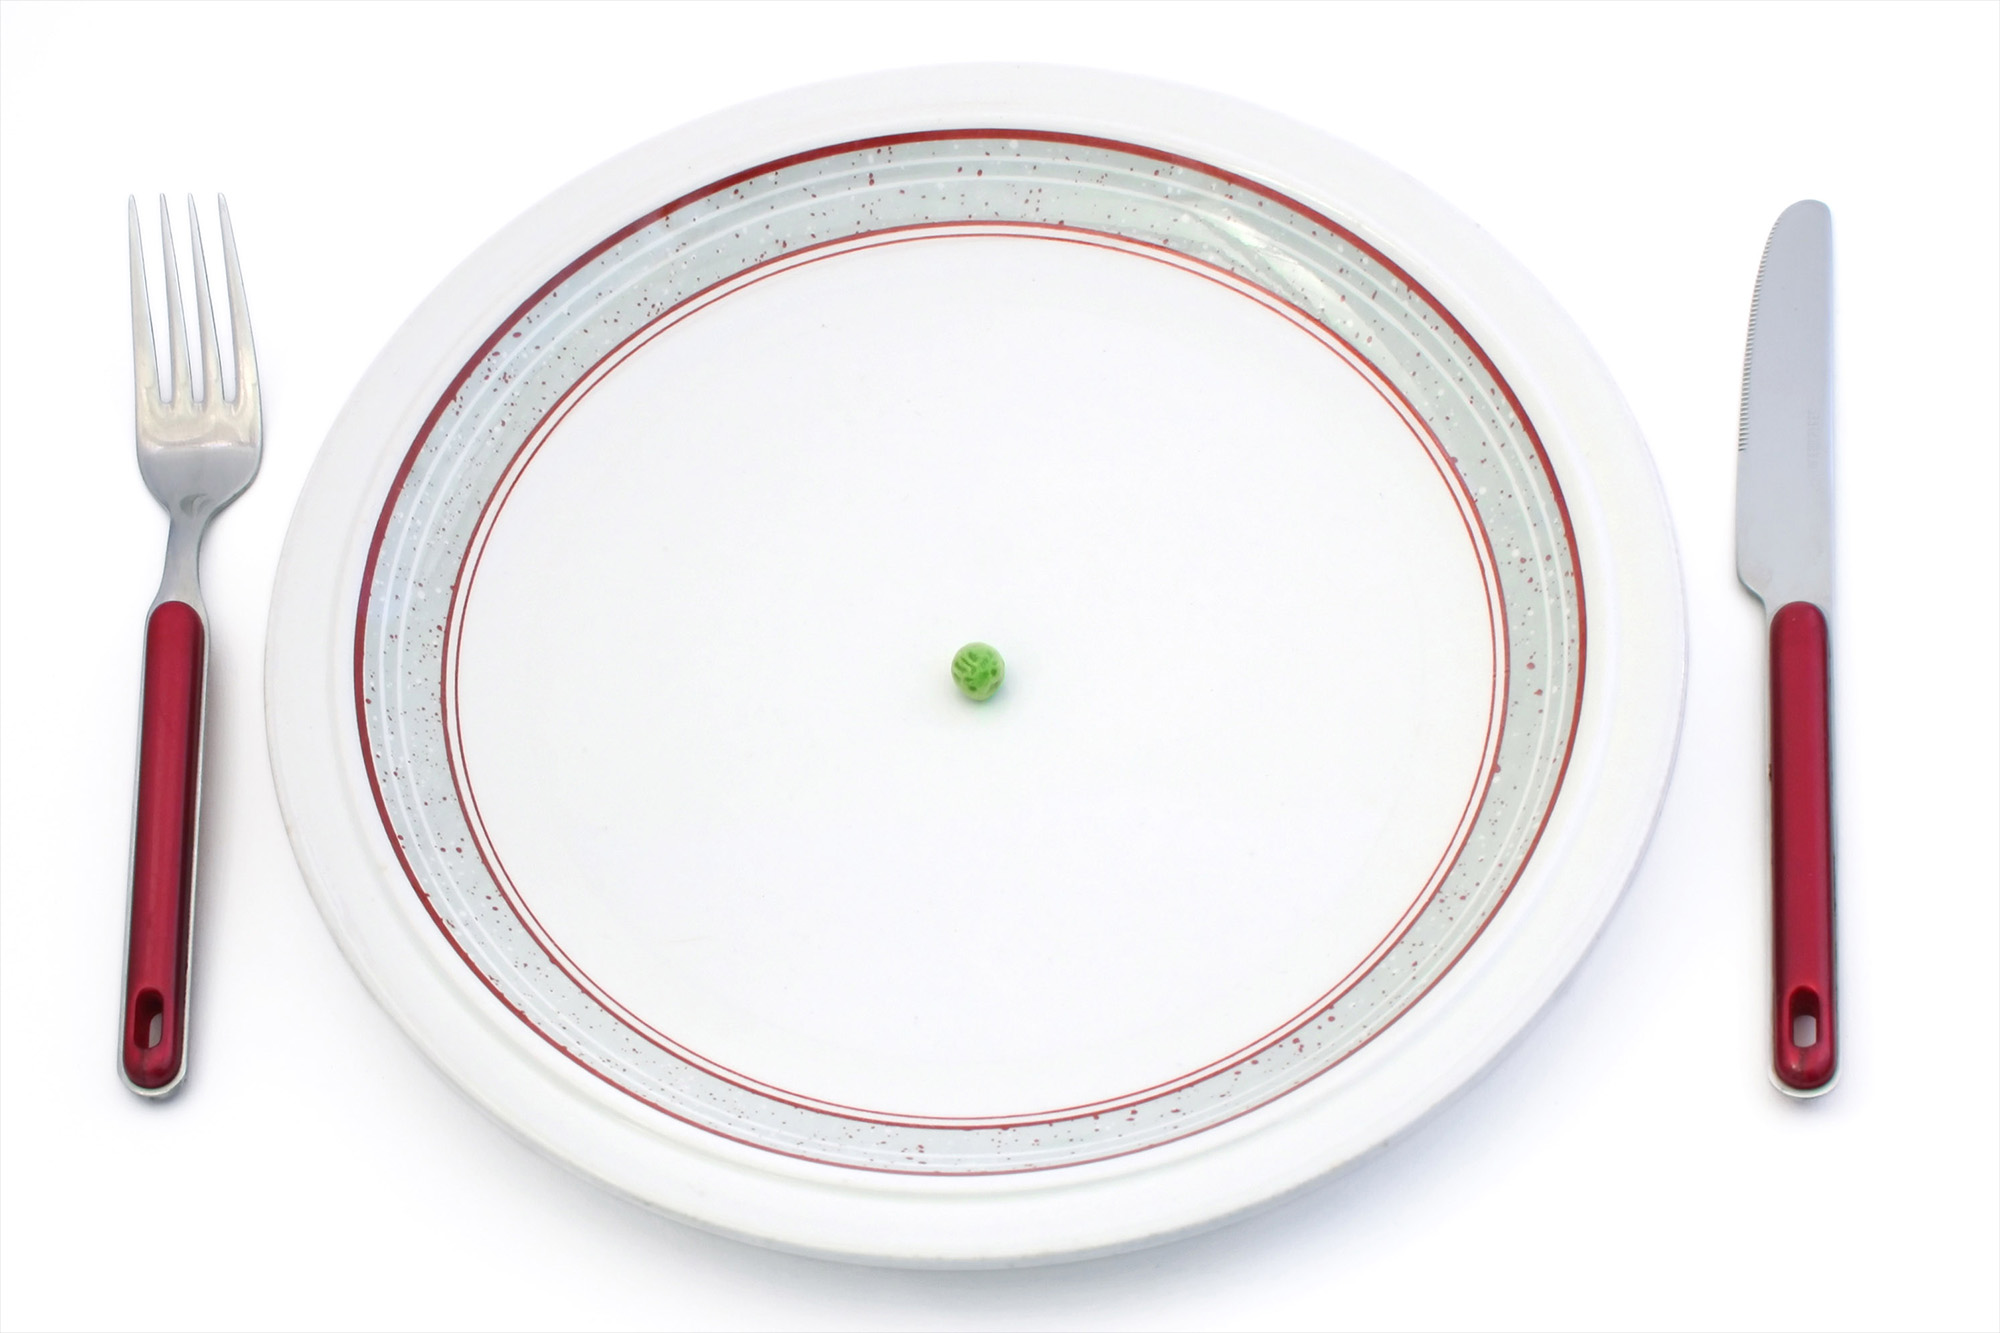 A fork and knife by a plate empty except for a single pea.